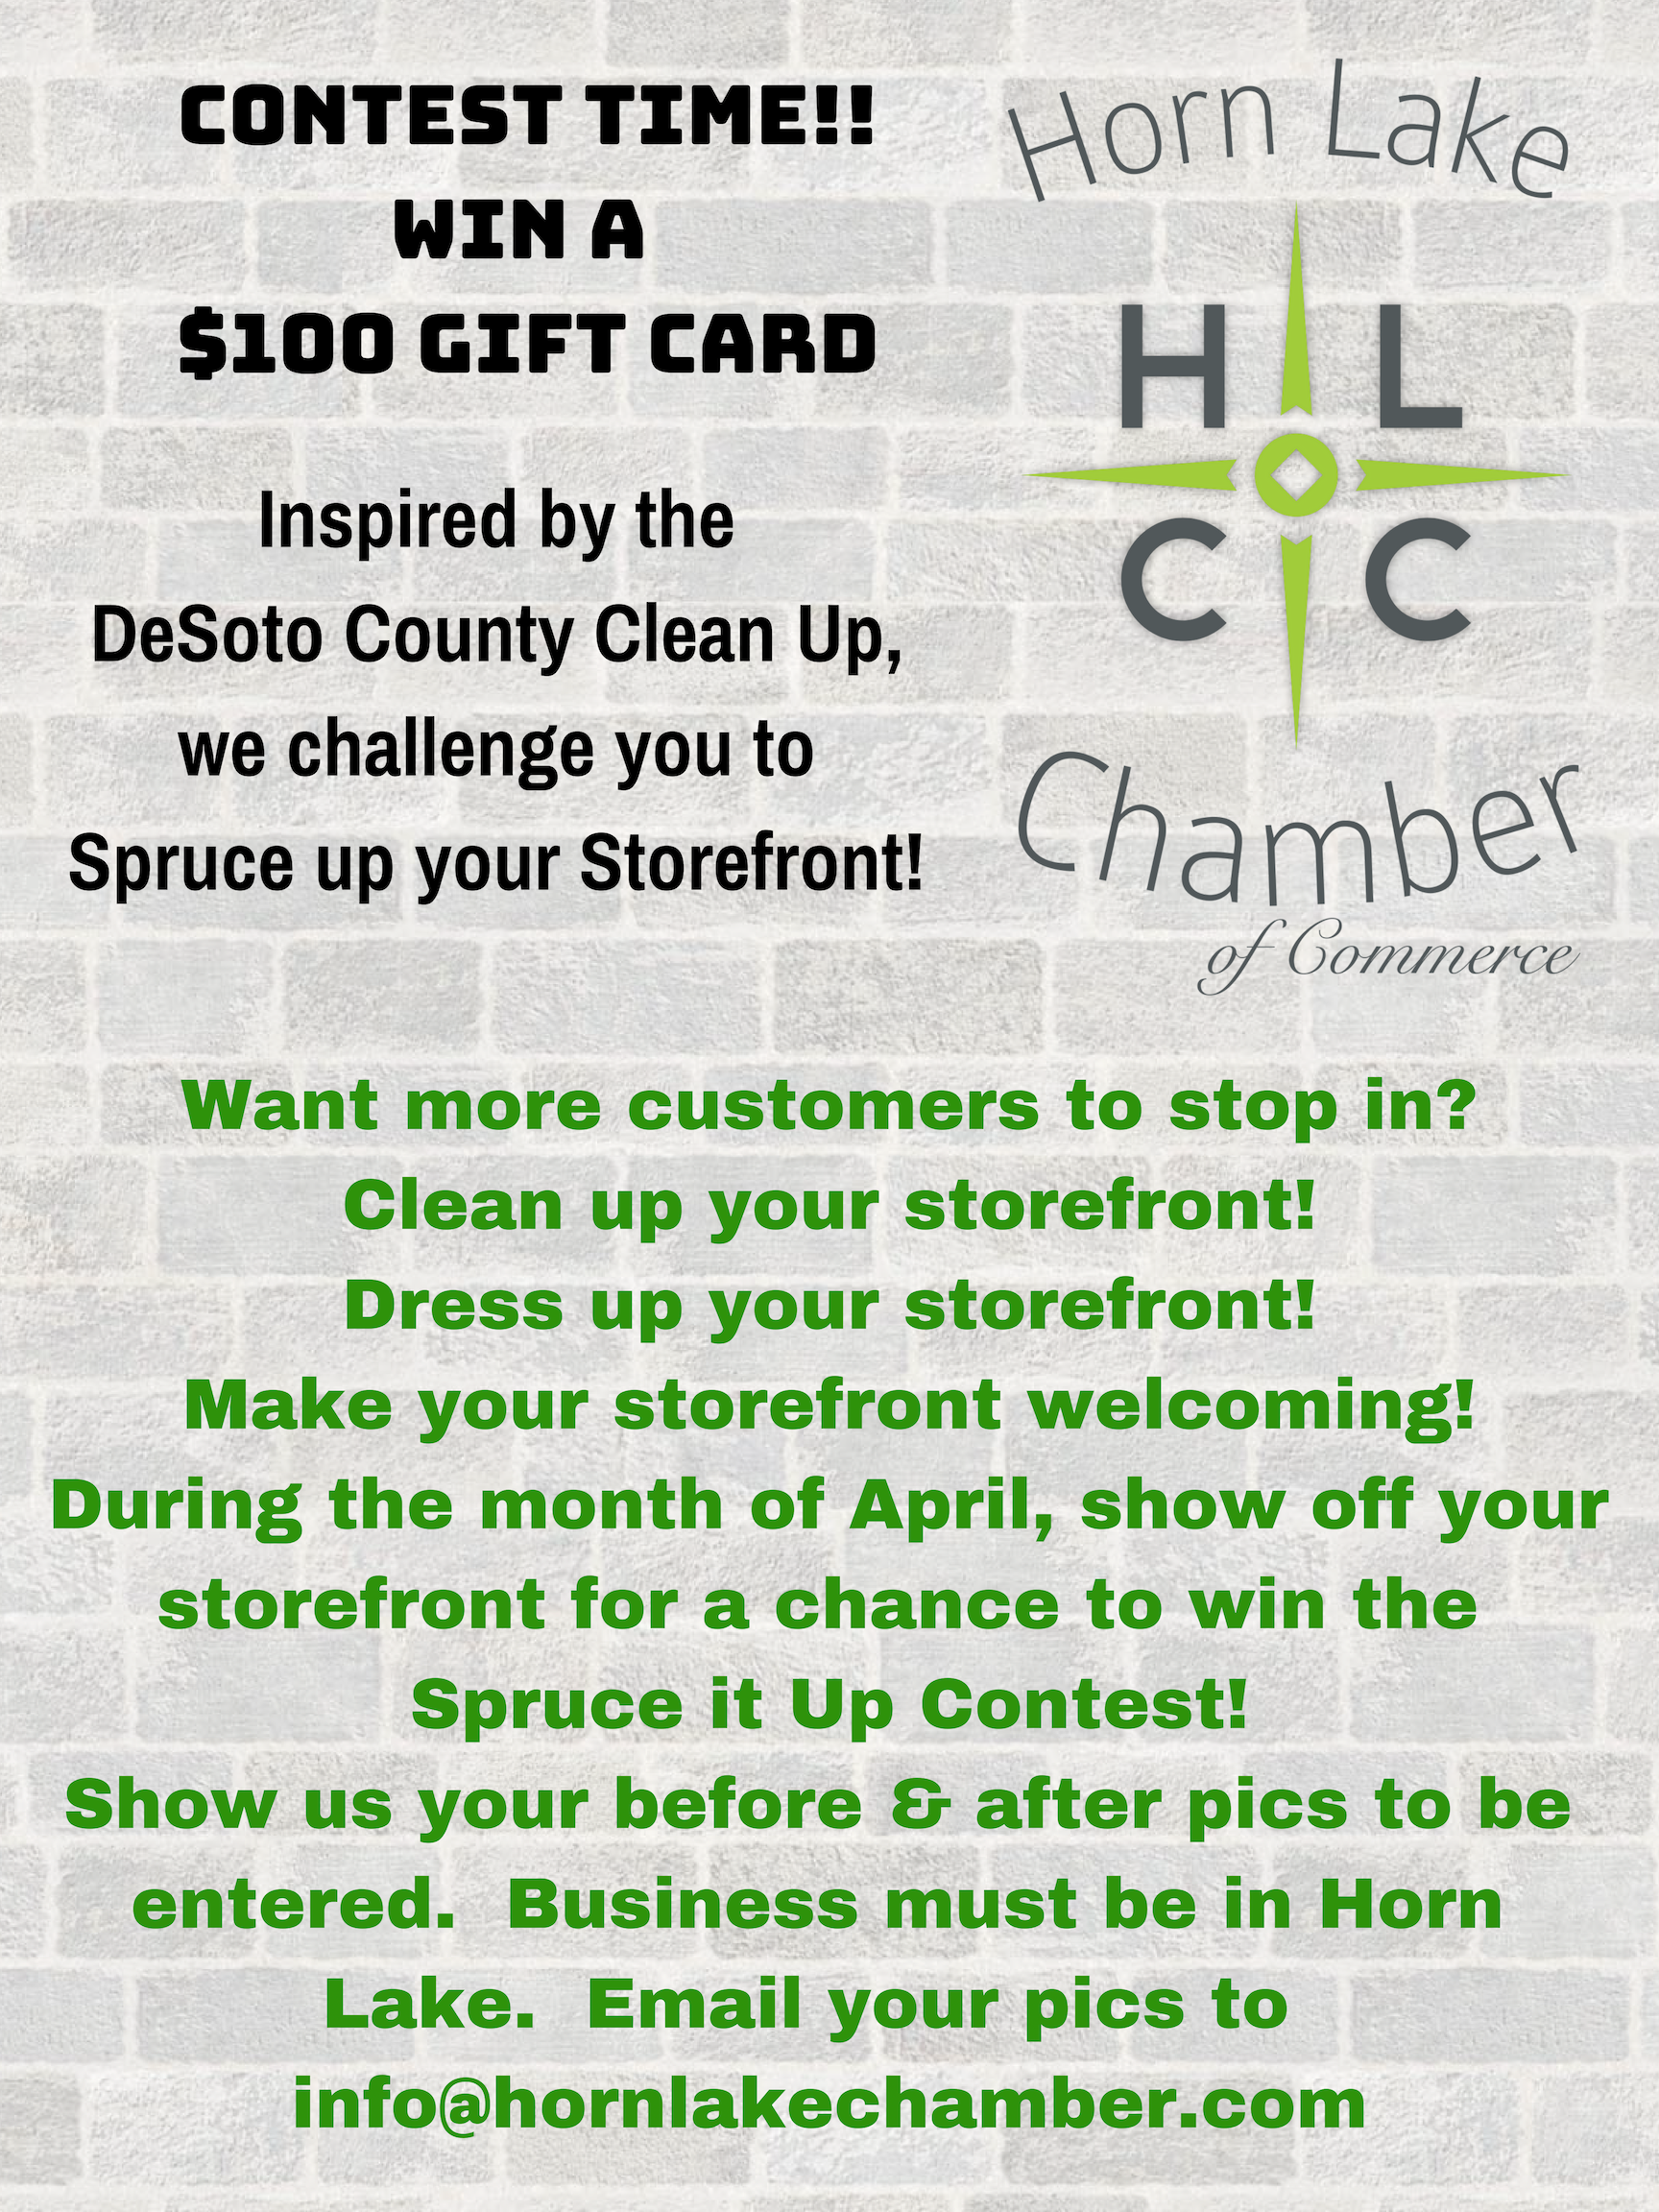 Spruce up Storefront contest